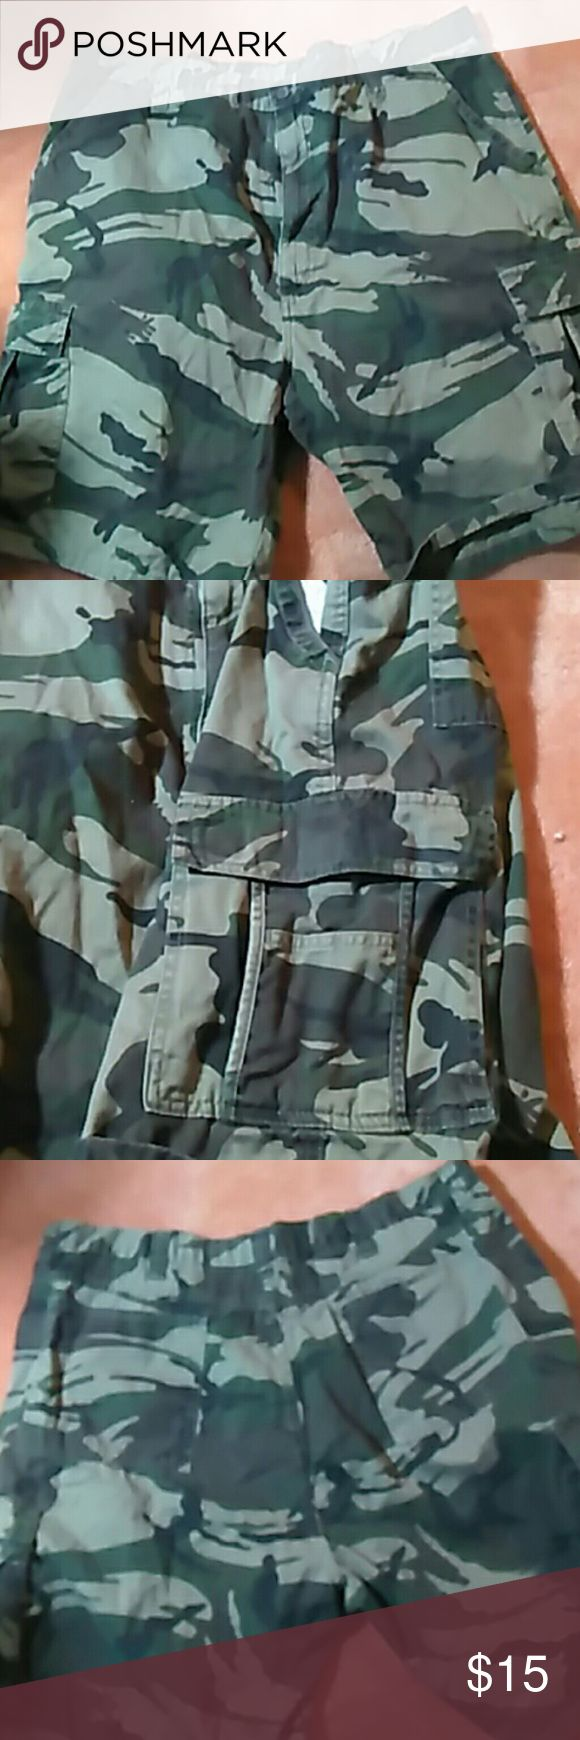 "Size ""42"" Mens camouflage shorts w/pockets Men's shirts, camo size waist 42 Shorts Cargo"